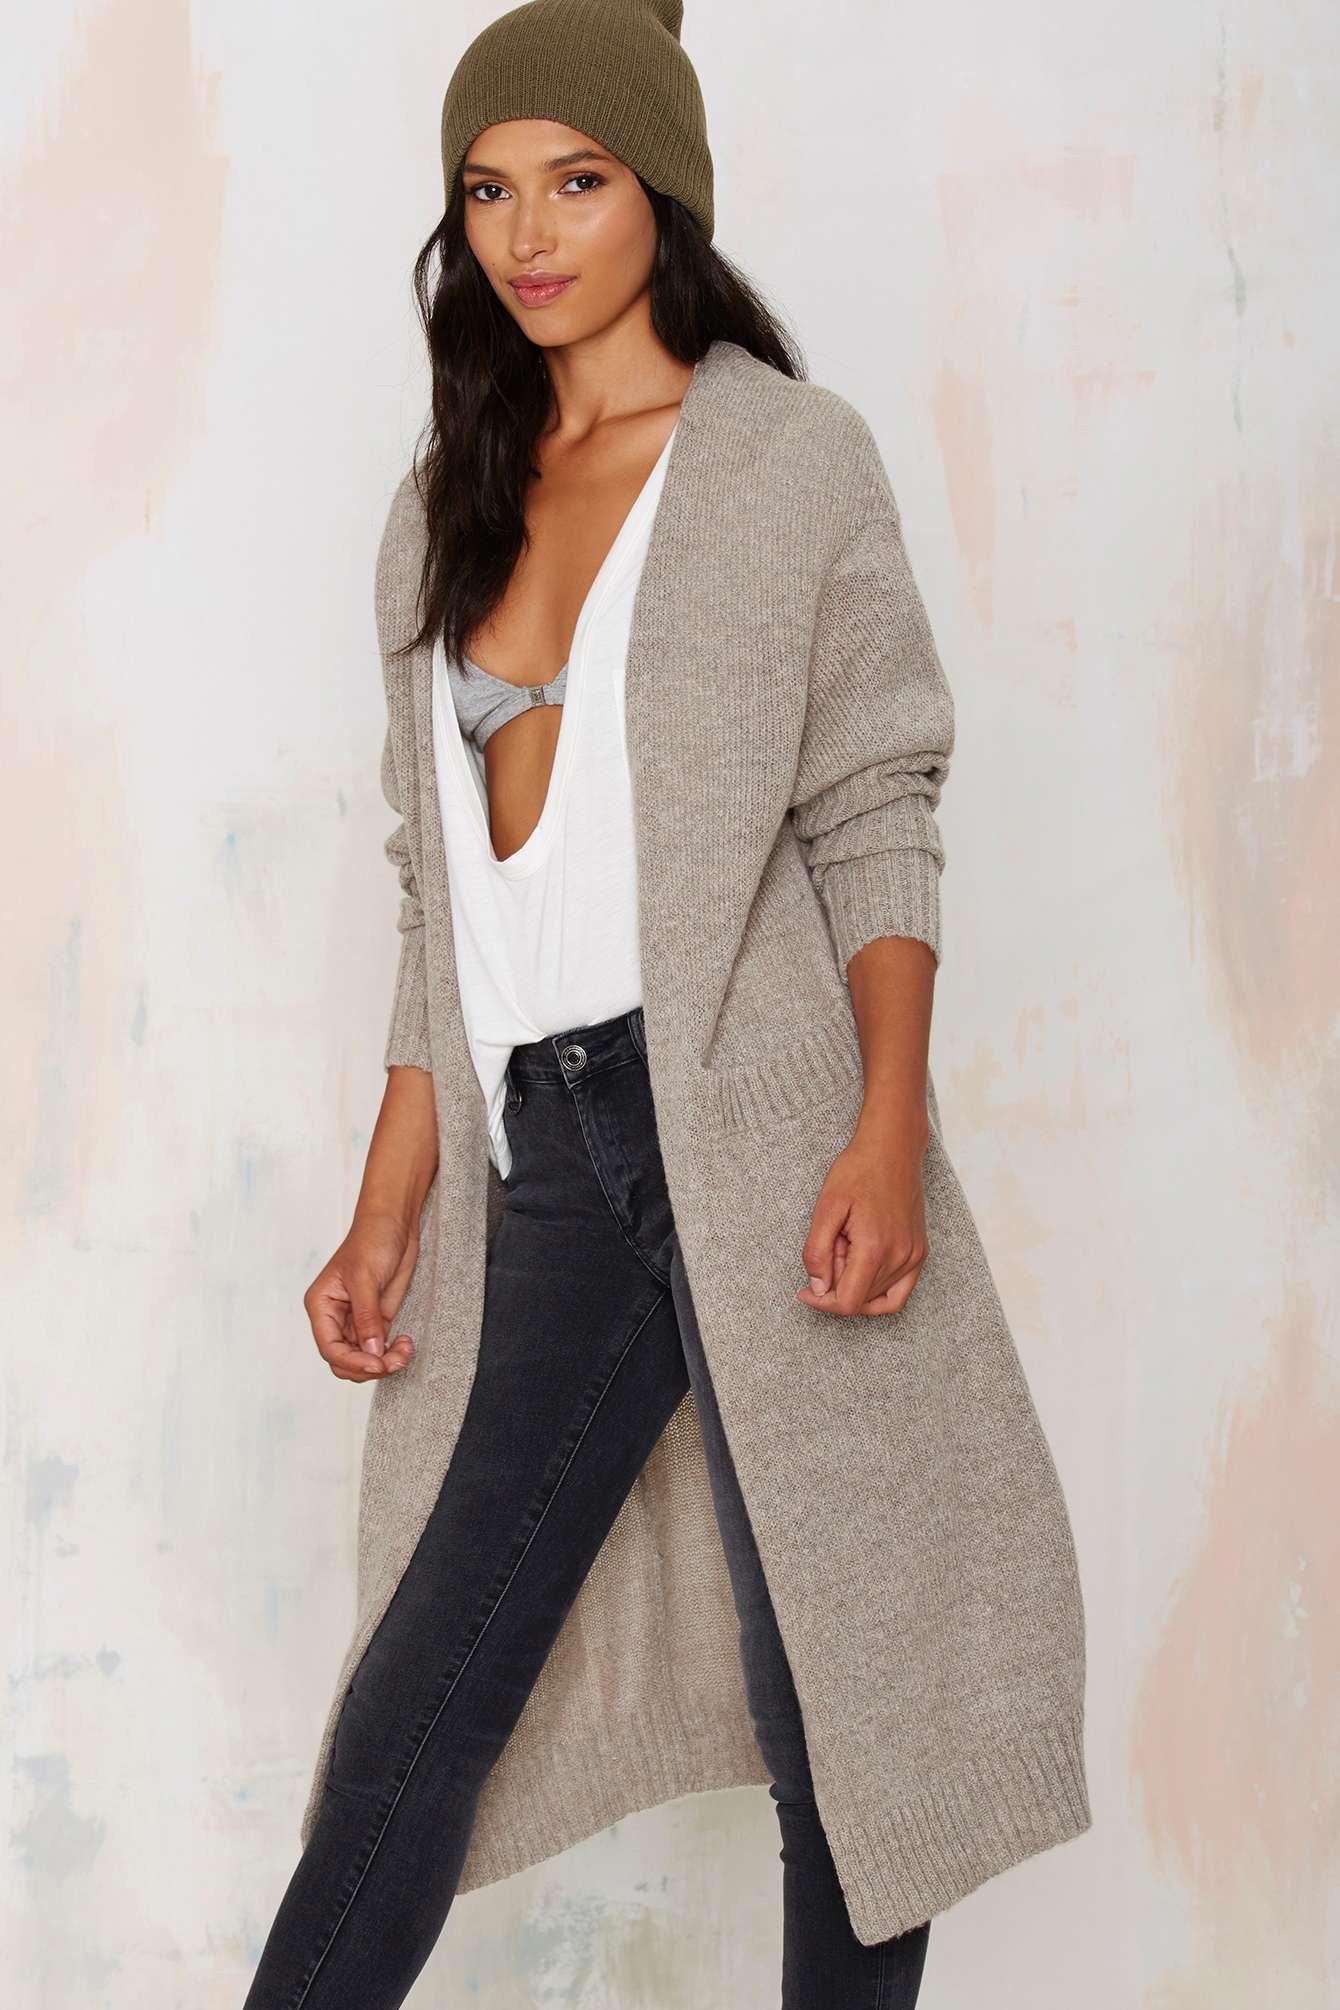 fcf3337afa9f4a Nasty Gal So Heated Duster Cardigan in Natural - Lyst